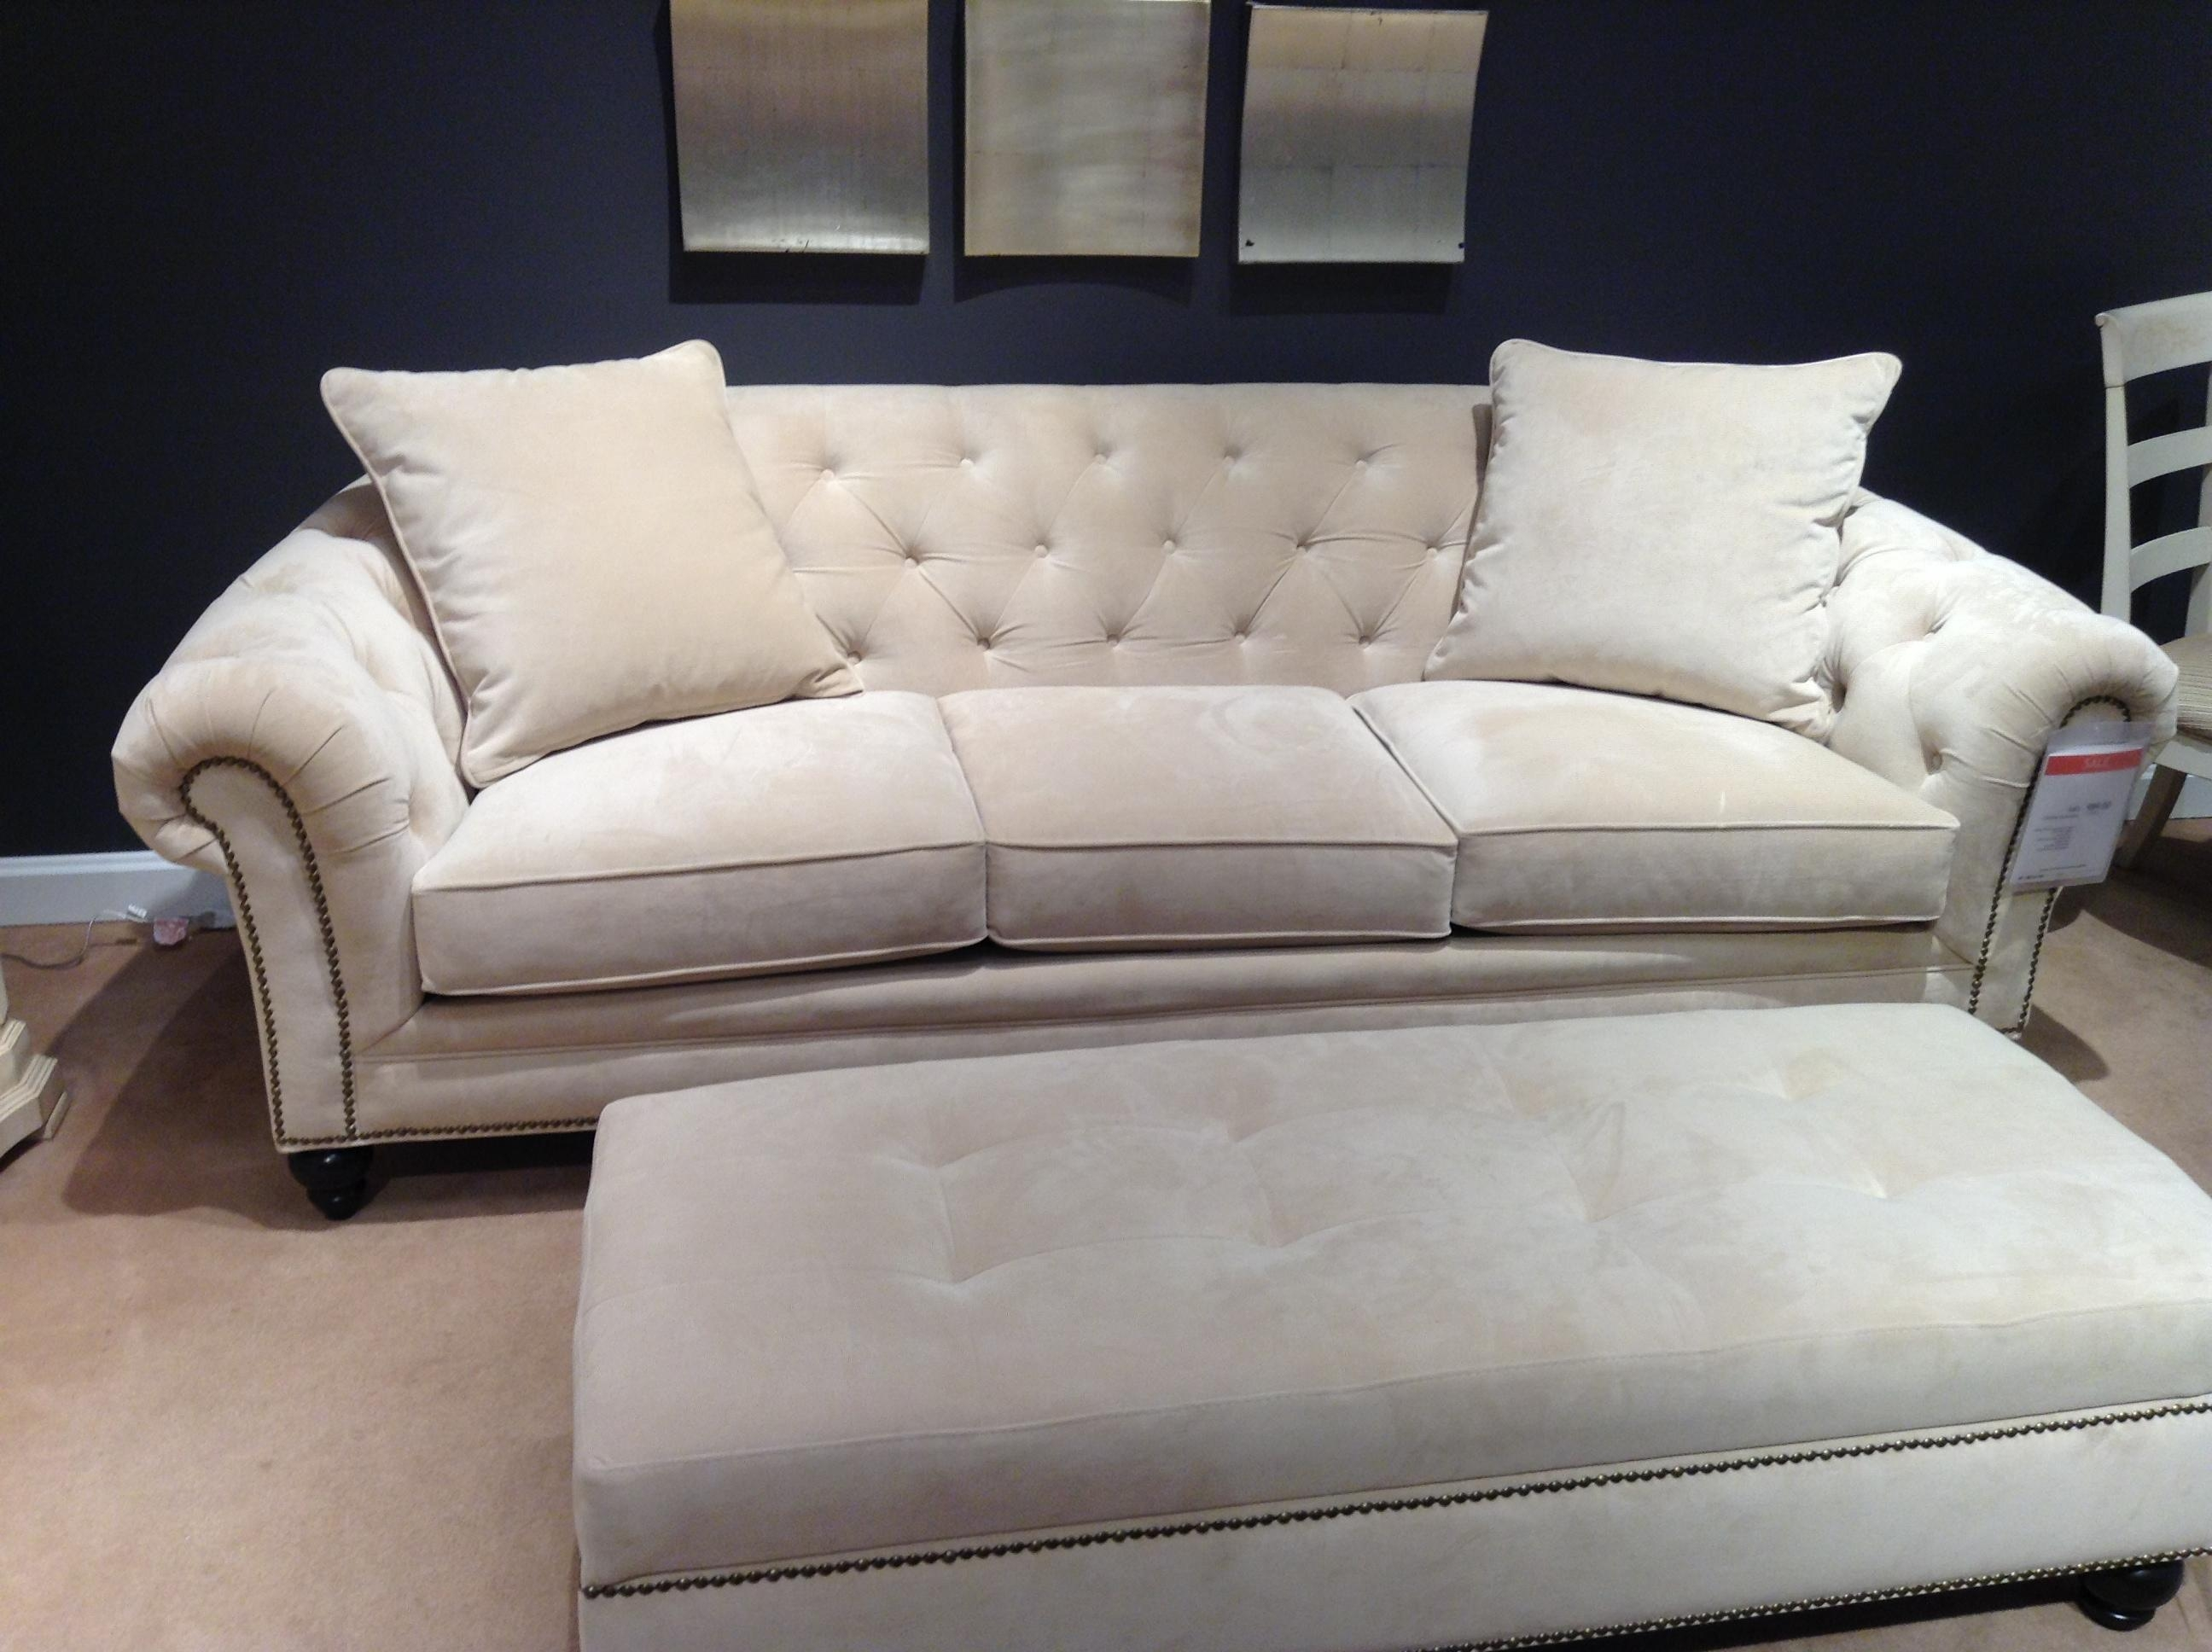 Sofas: Best Family Room Furniture Design With Elegant Macys Sofa Inside Macys Sofas (View 10 of 20)